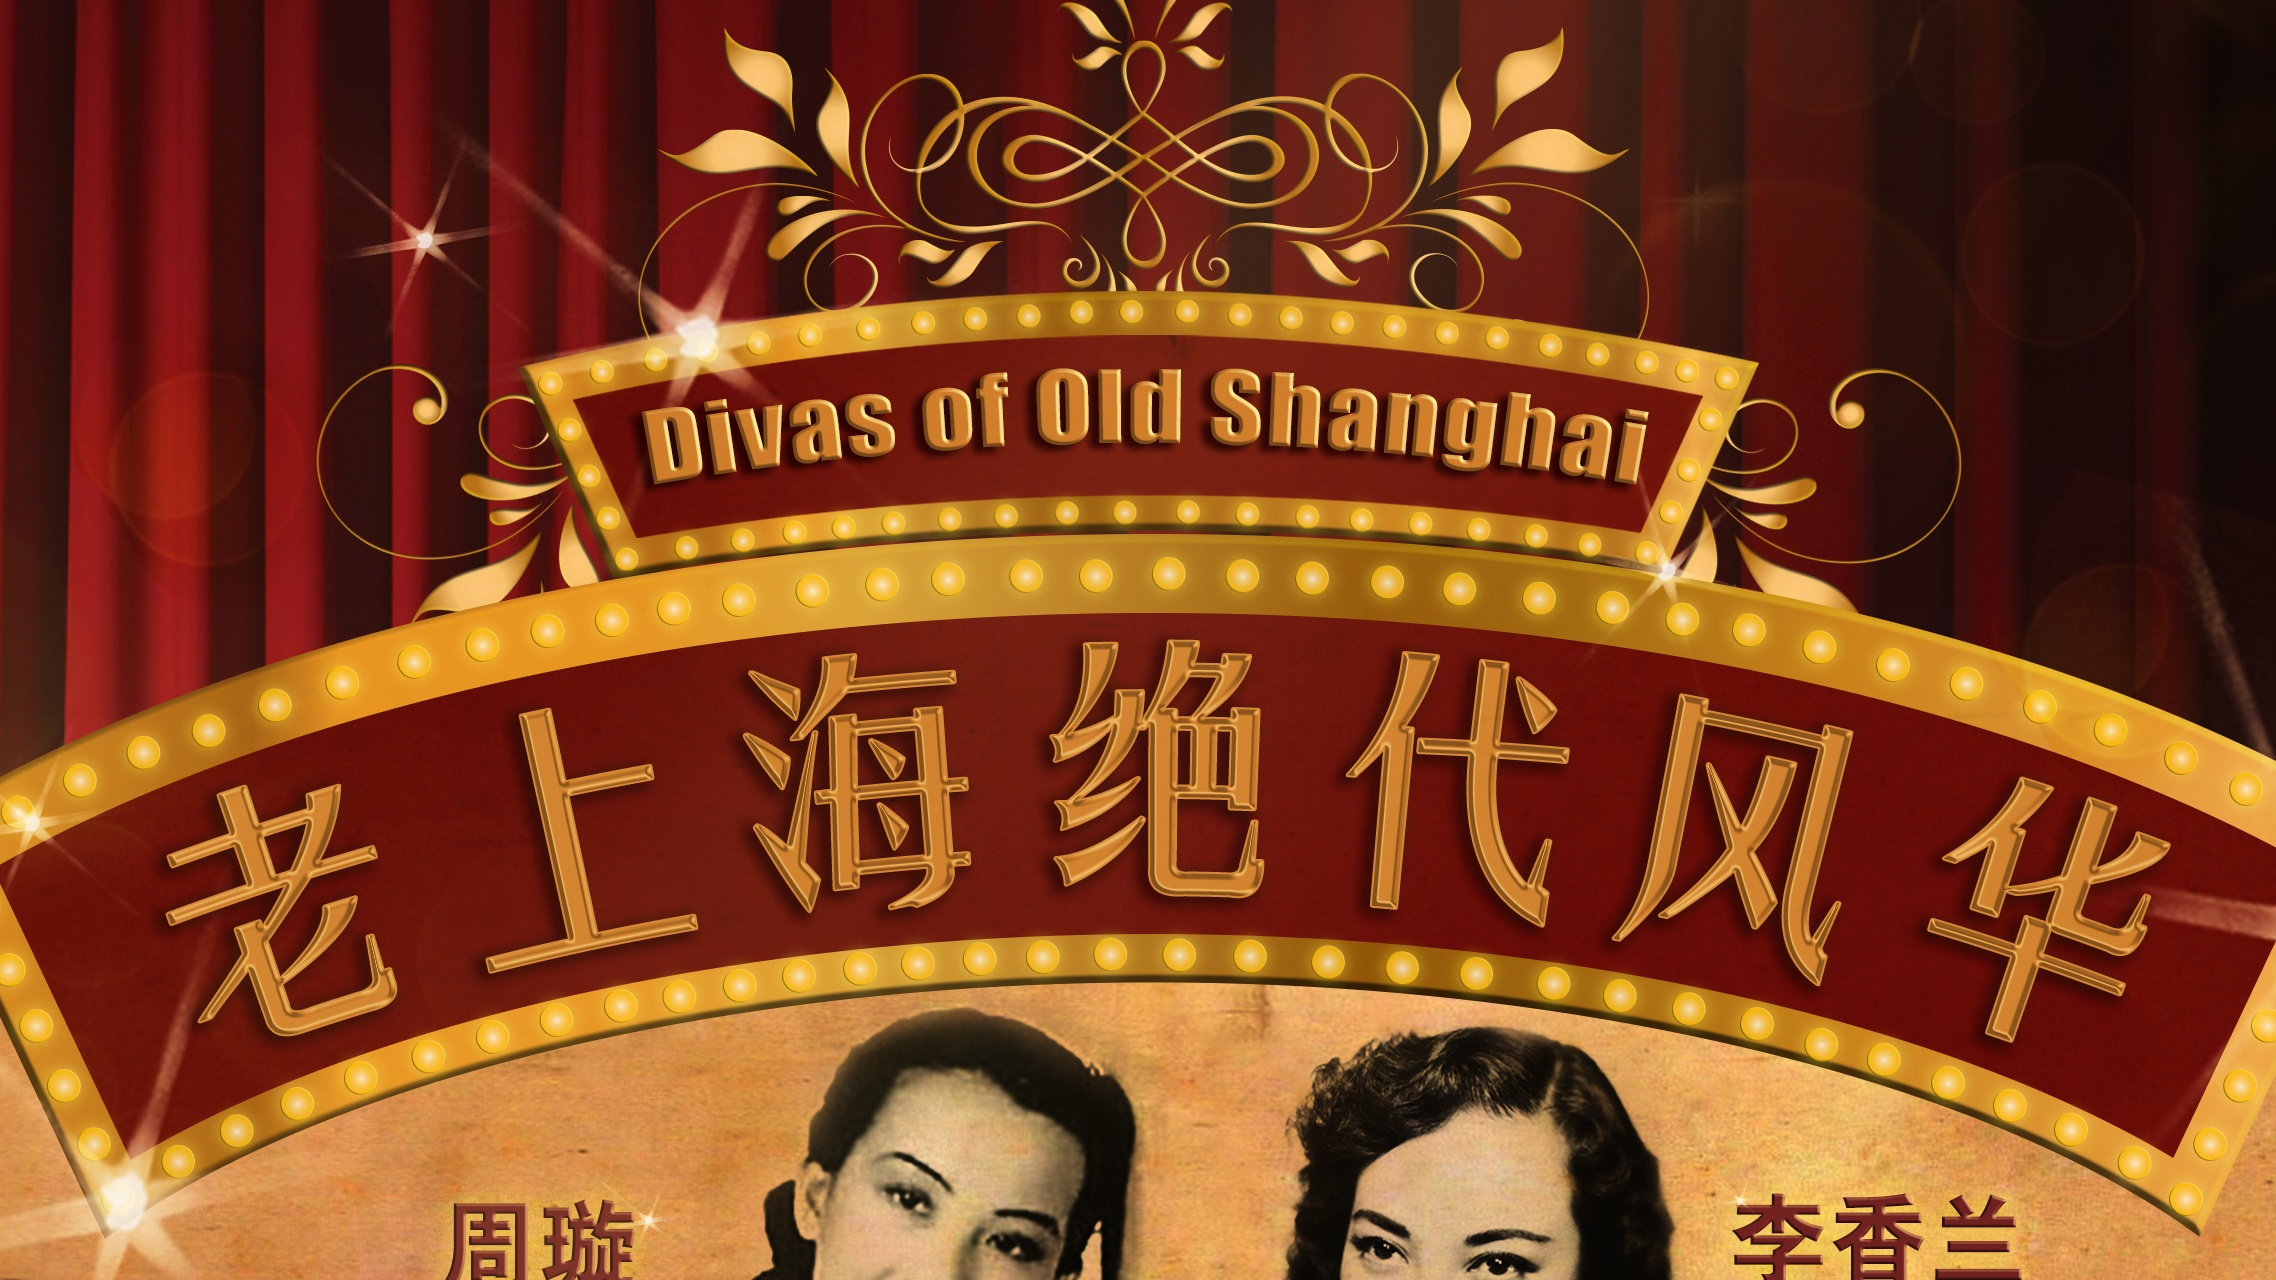 A Date with Friends - Divas of Old Shanghai